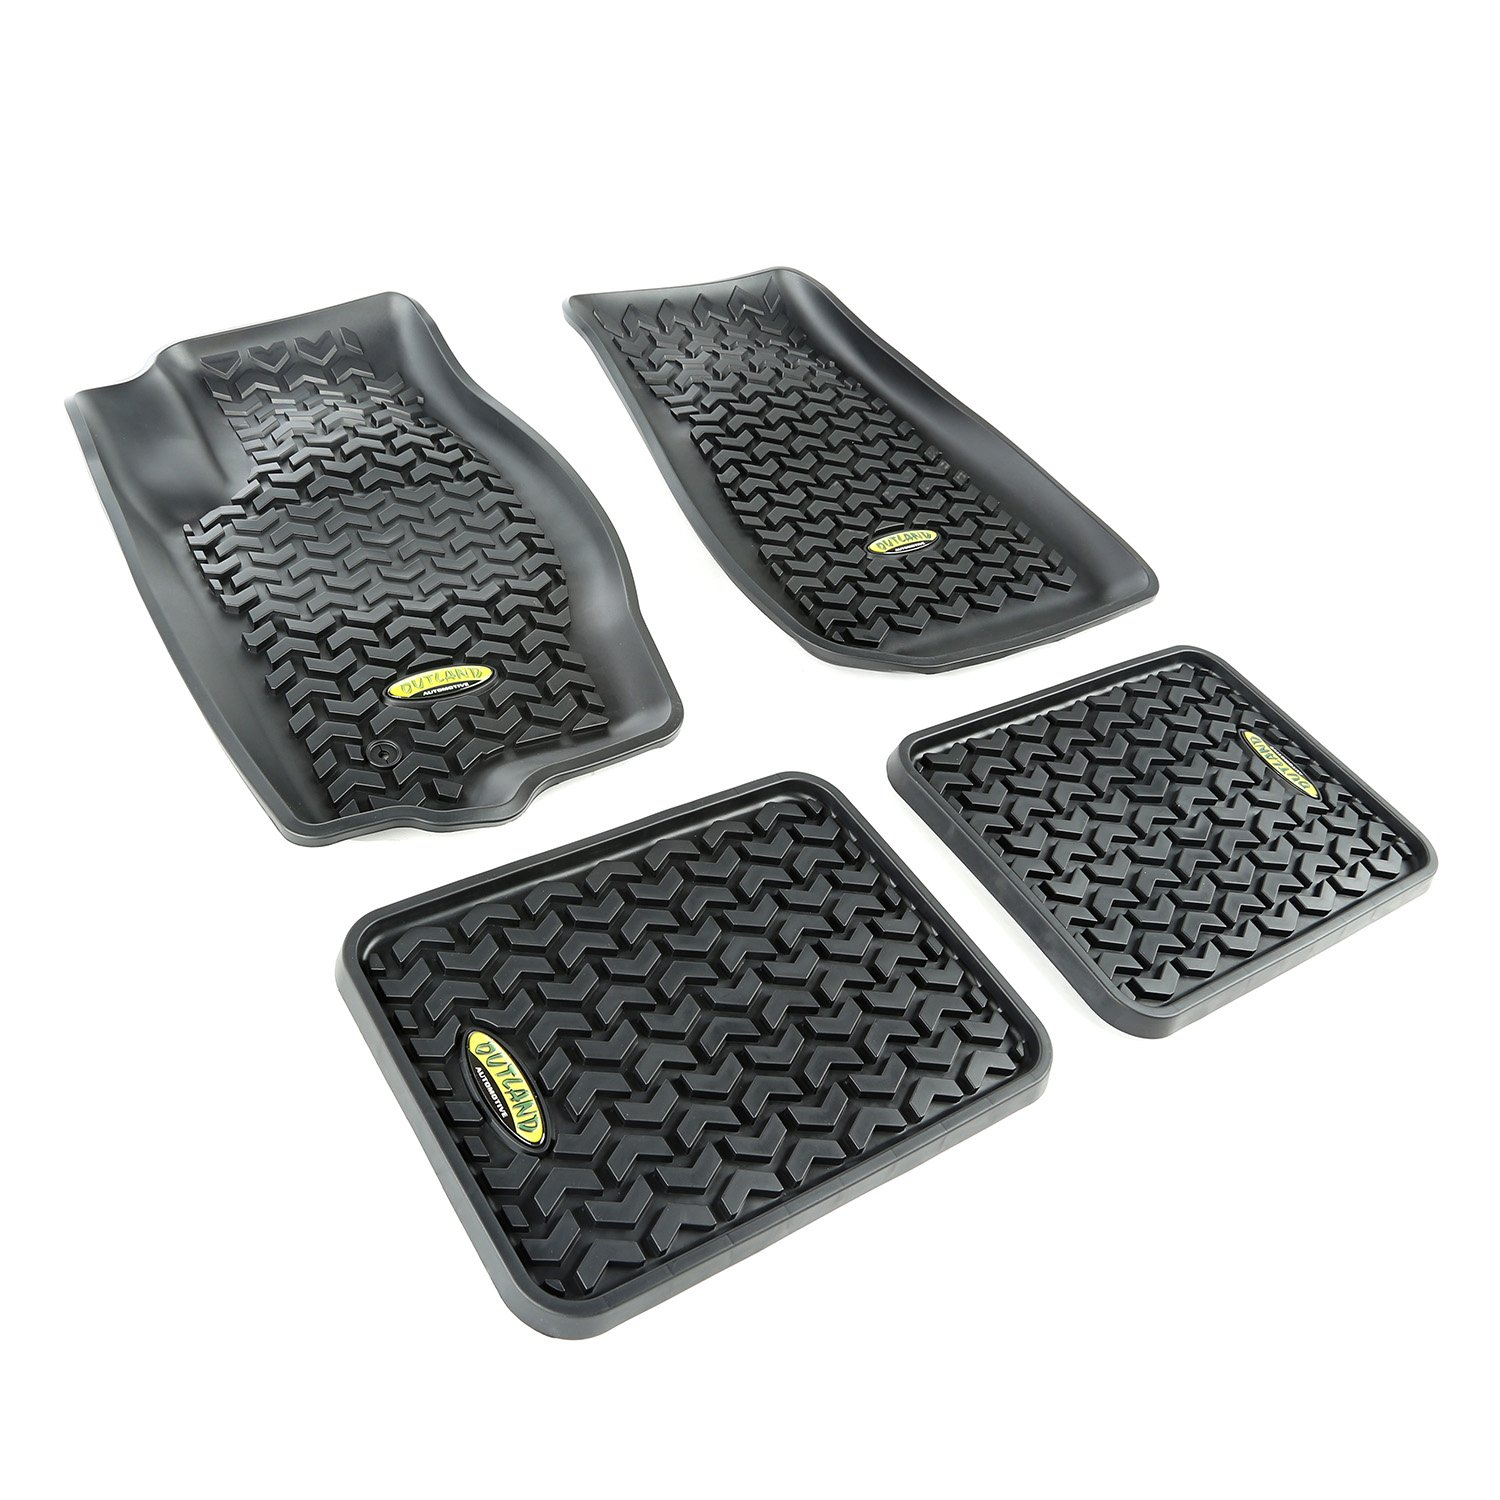 Outland 391498728 Grey Front and Rear Floor Liner Kit For Select Jeep Grand Cherokee Models